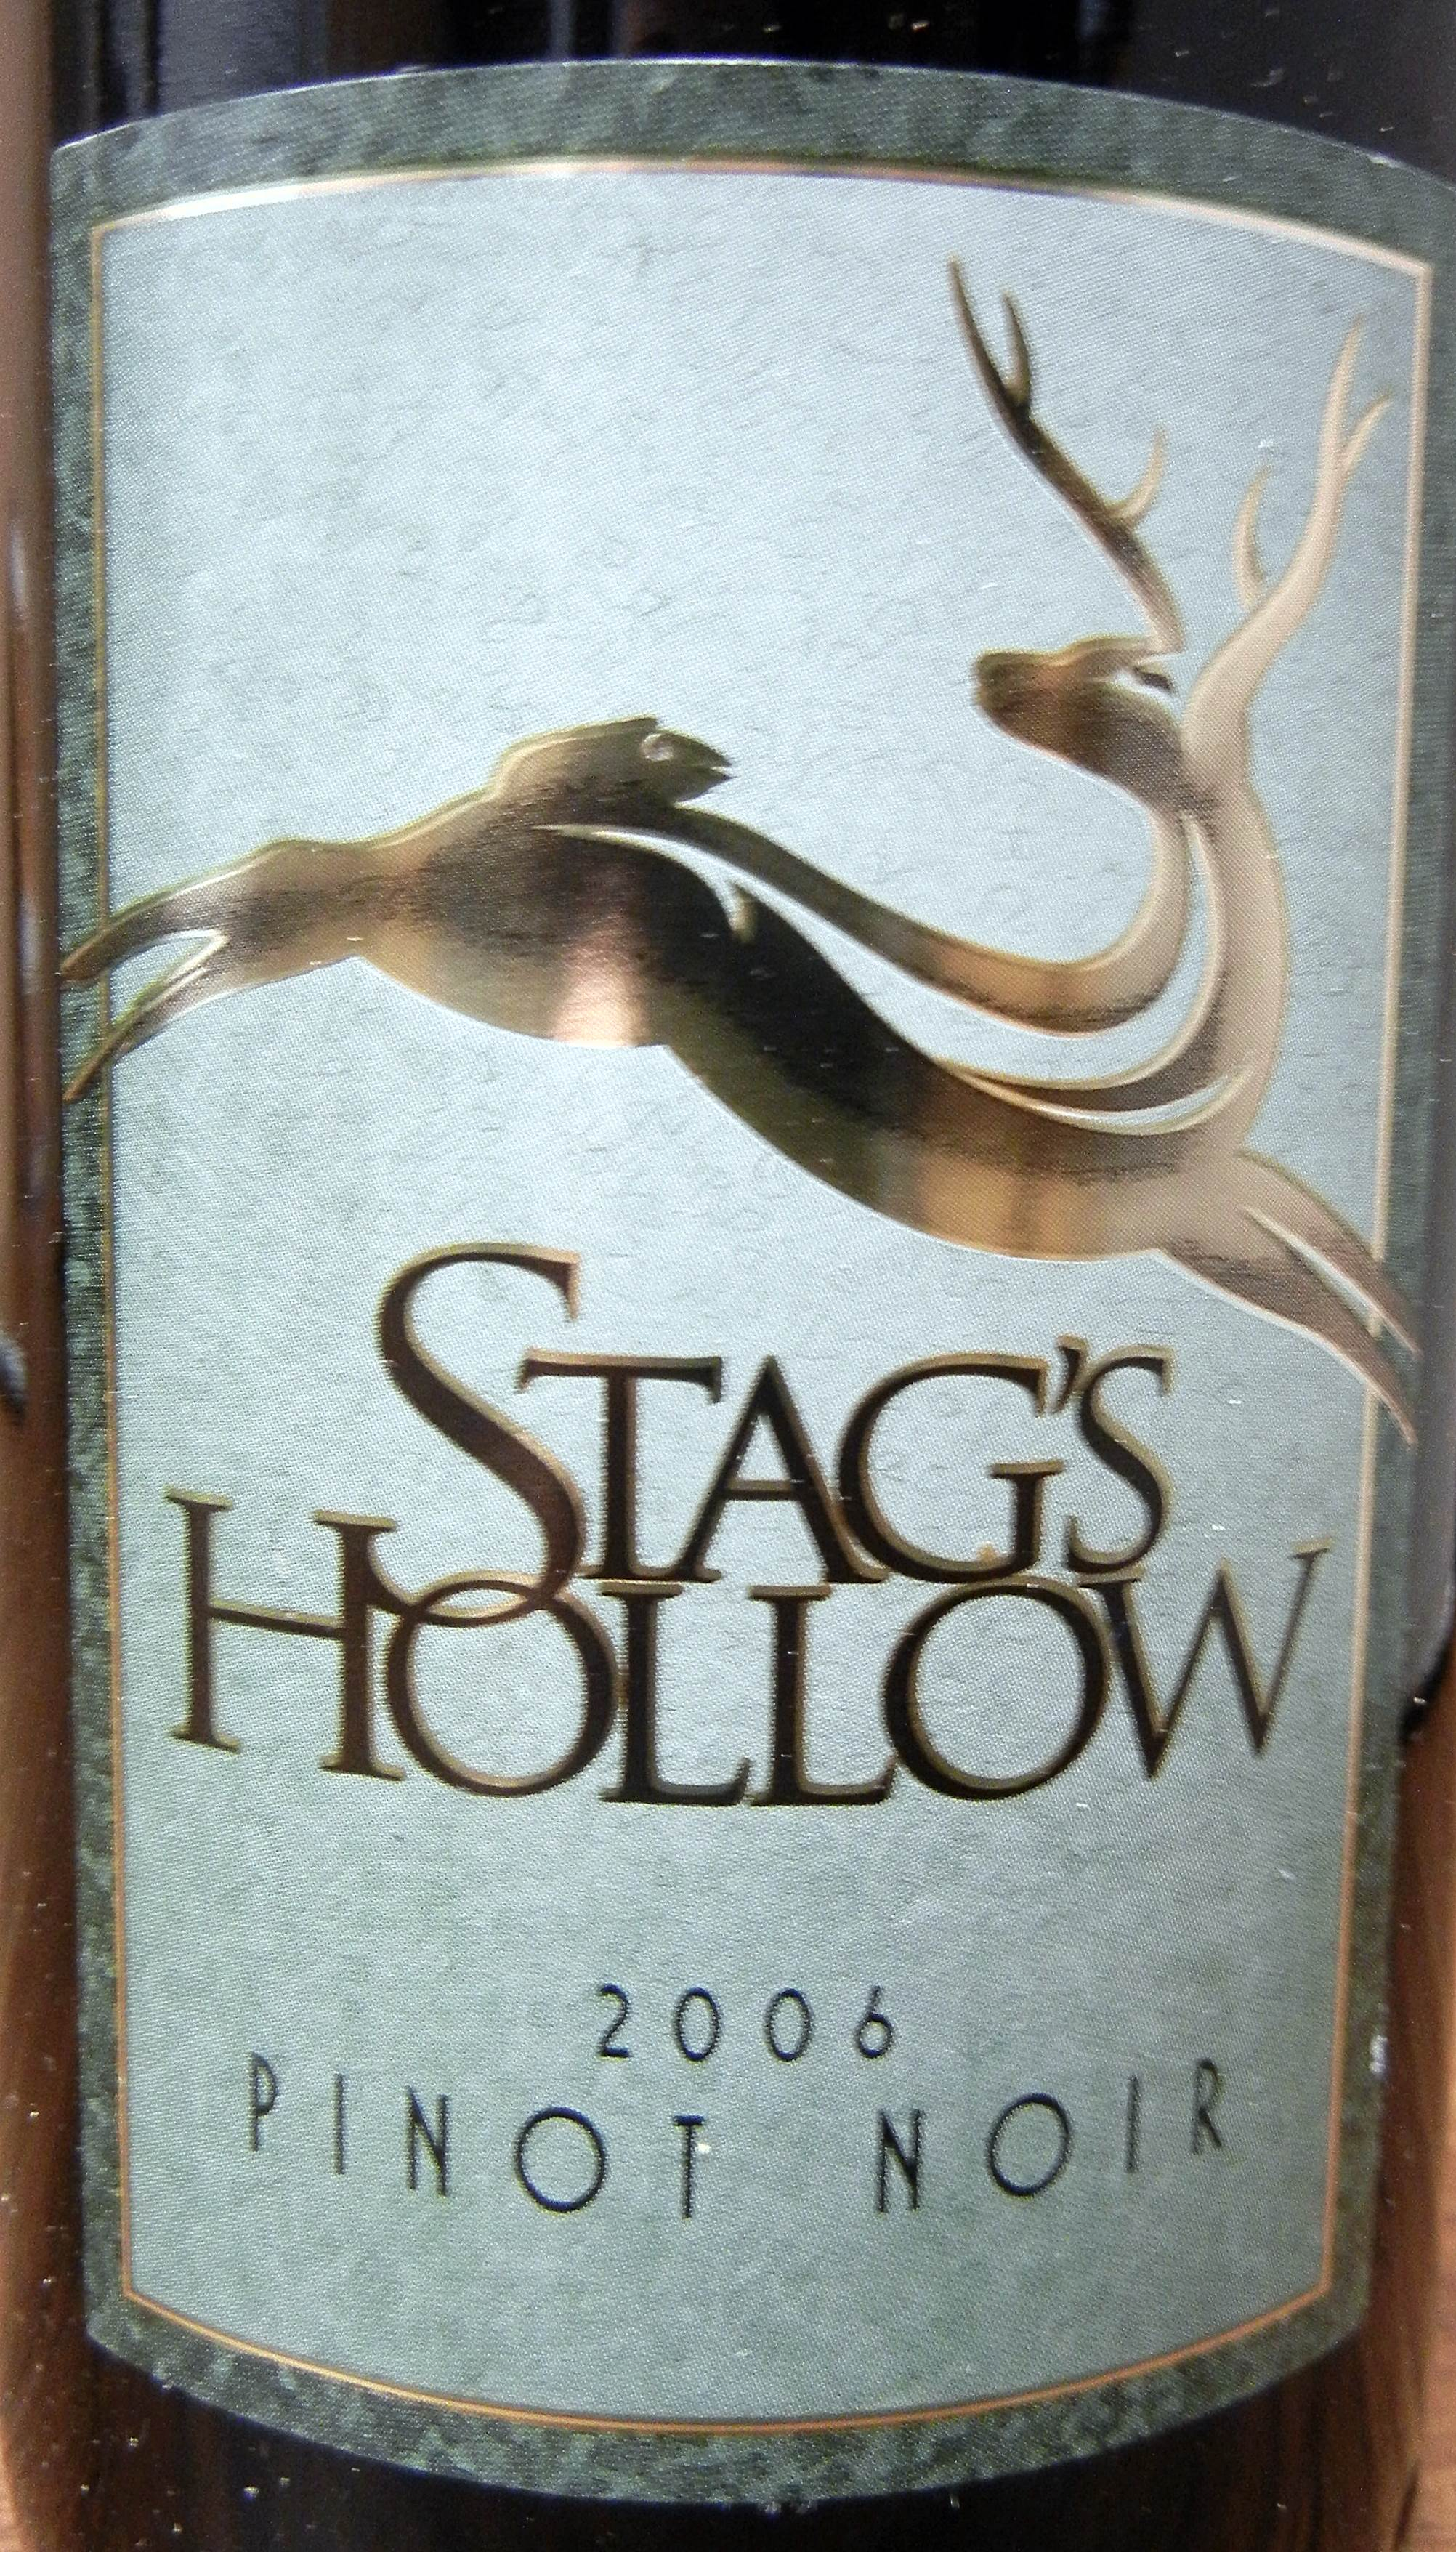 Stag's Hollow Pinot Noir 2006 Label - BC Pinot Noir Tasting Review 5